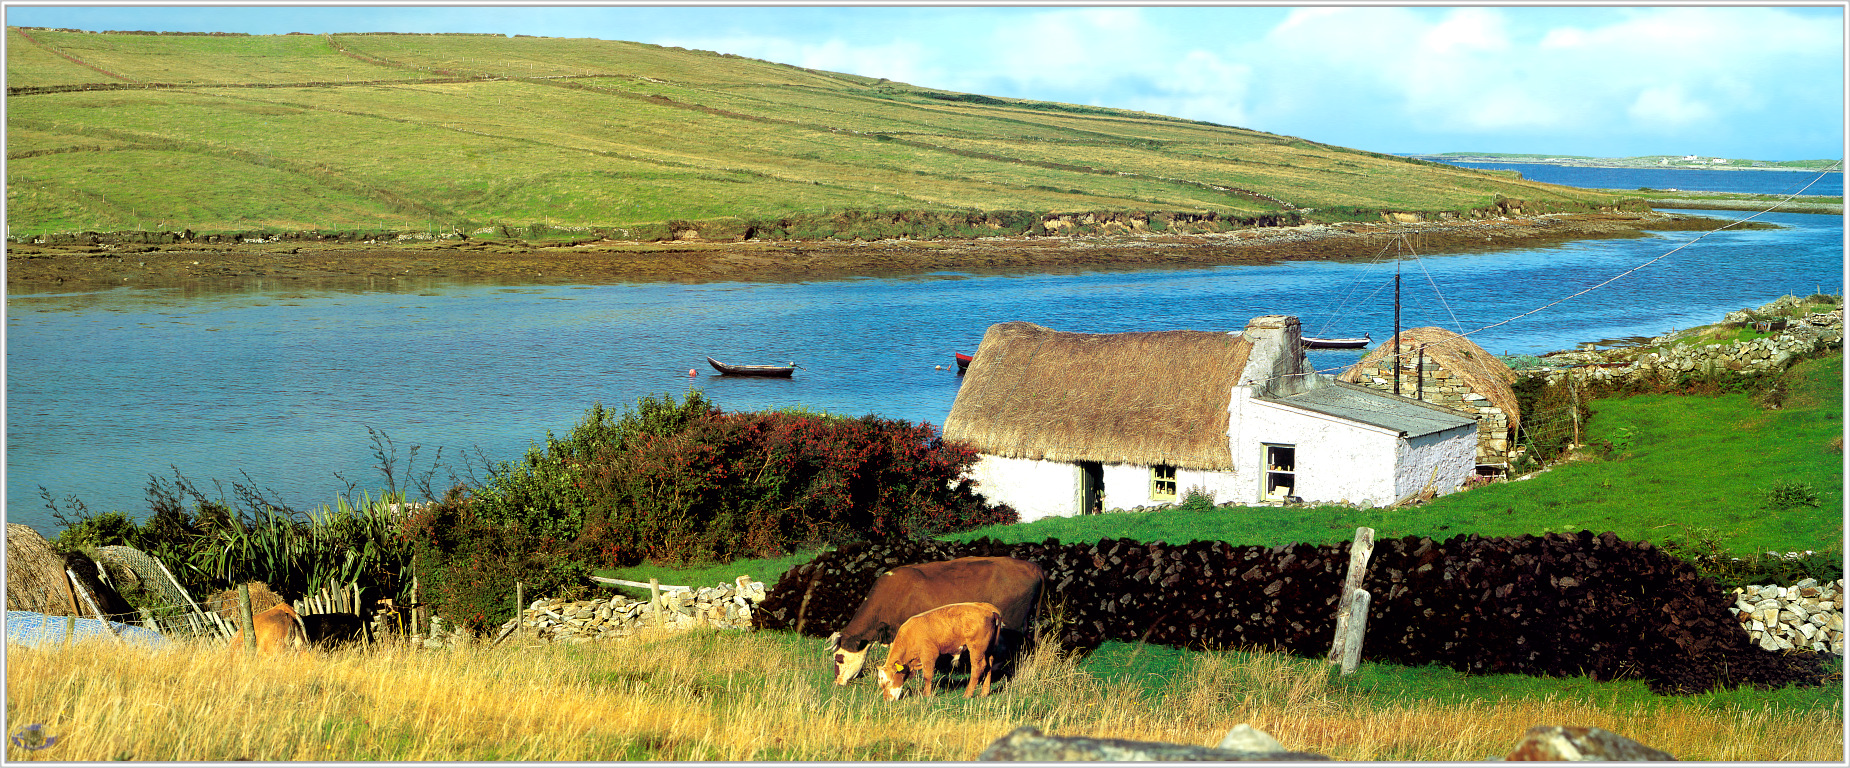 [Minnie Scenes SWD] Cows, Traditional Cottage near Clifden, Ireland; DISPLAY FULL IMAGE.